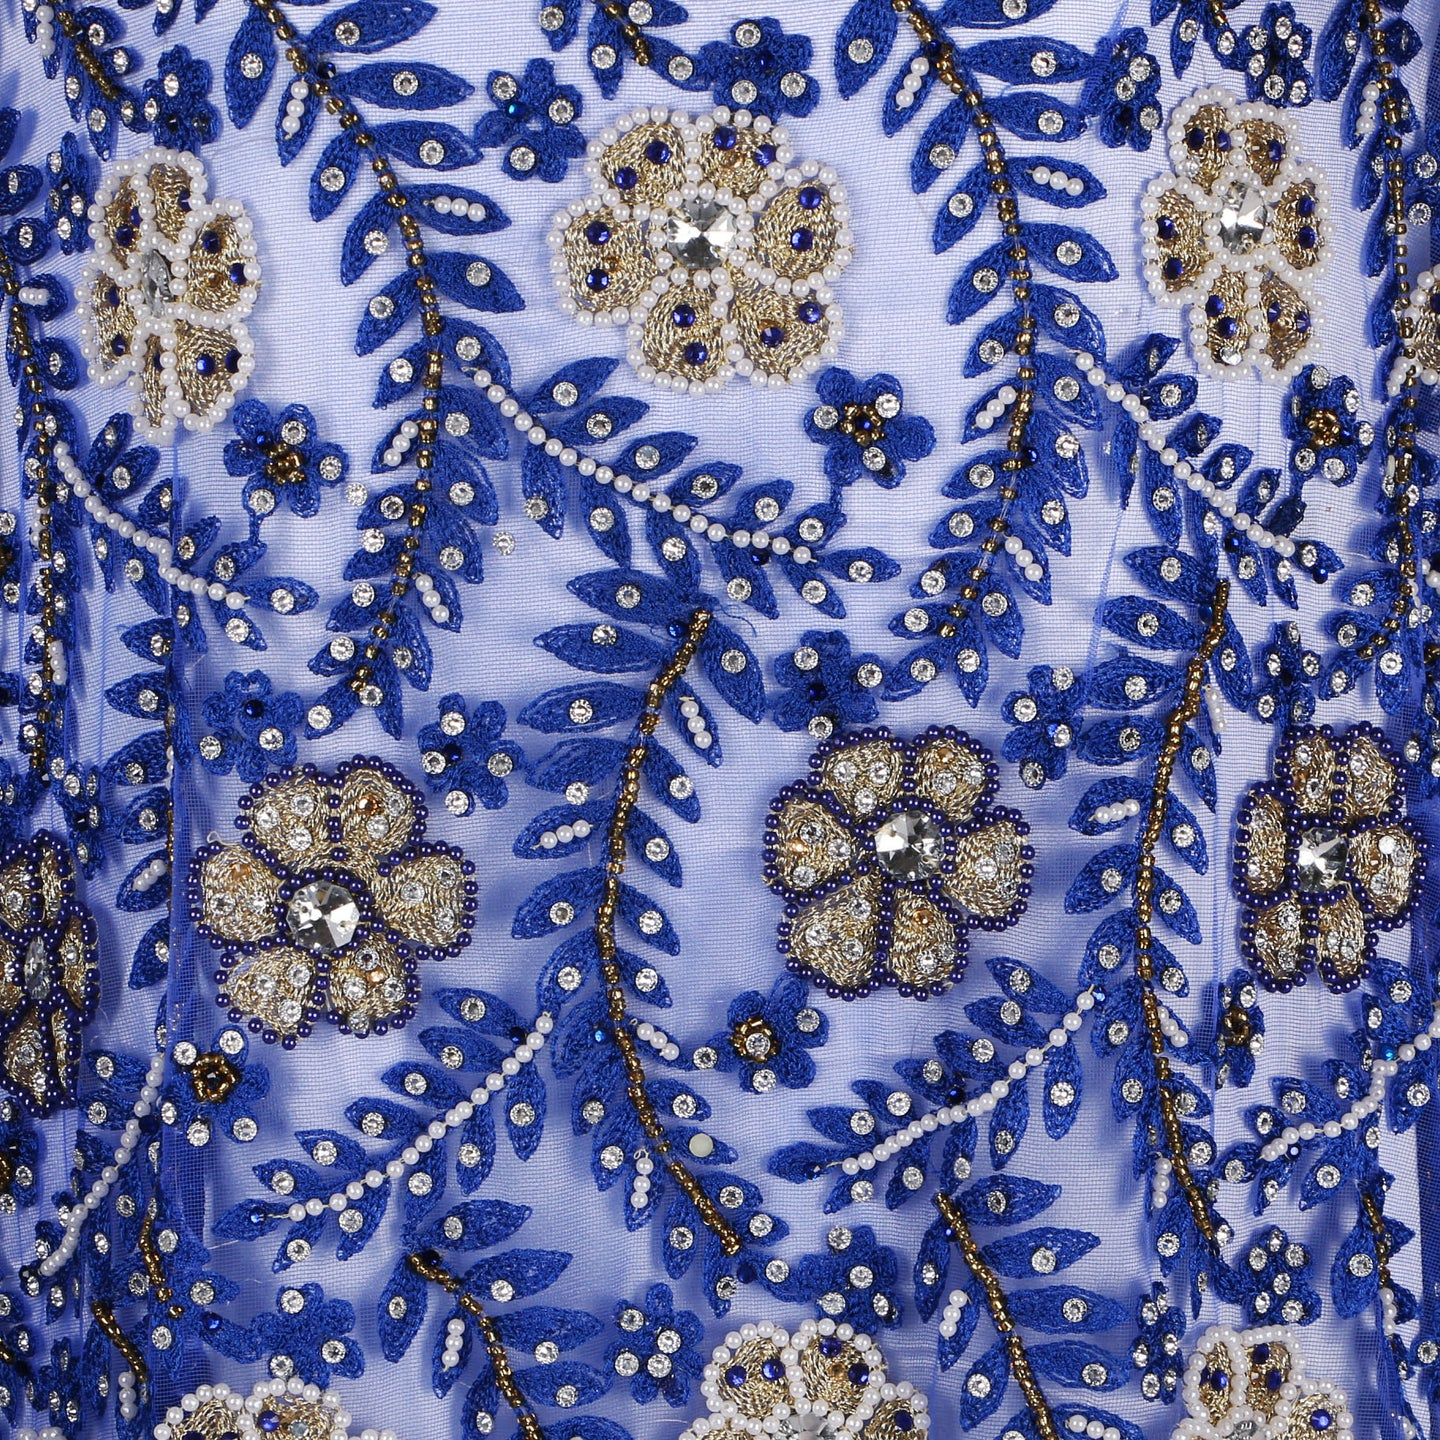 Hand Embroidered Fabric Design # 4054 - Royal Blue  - 5 Yard Piece